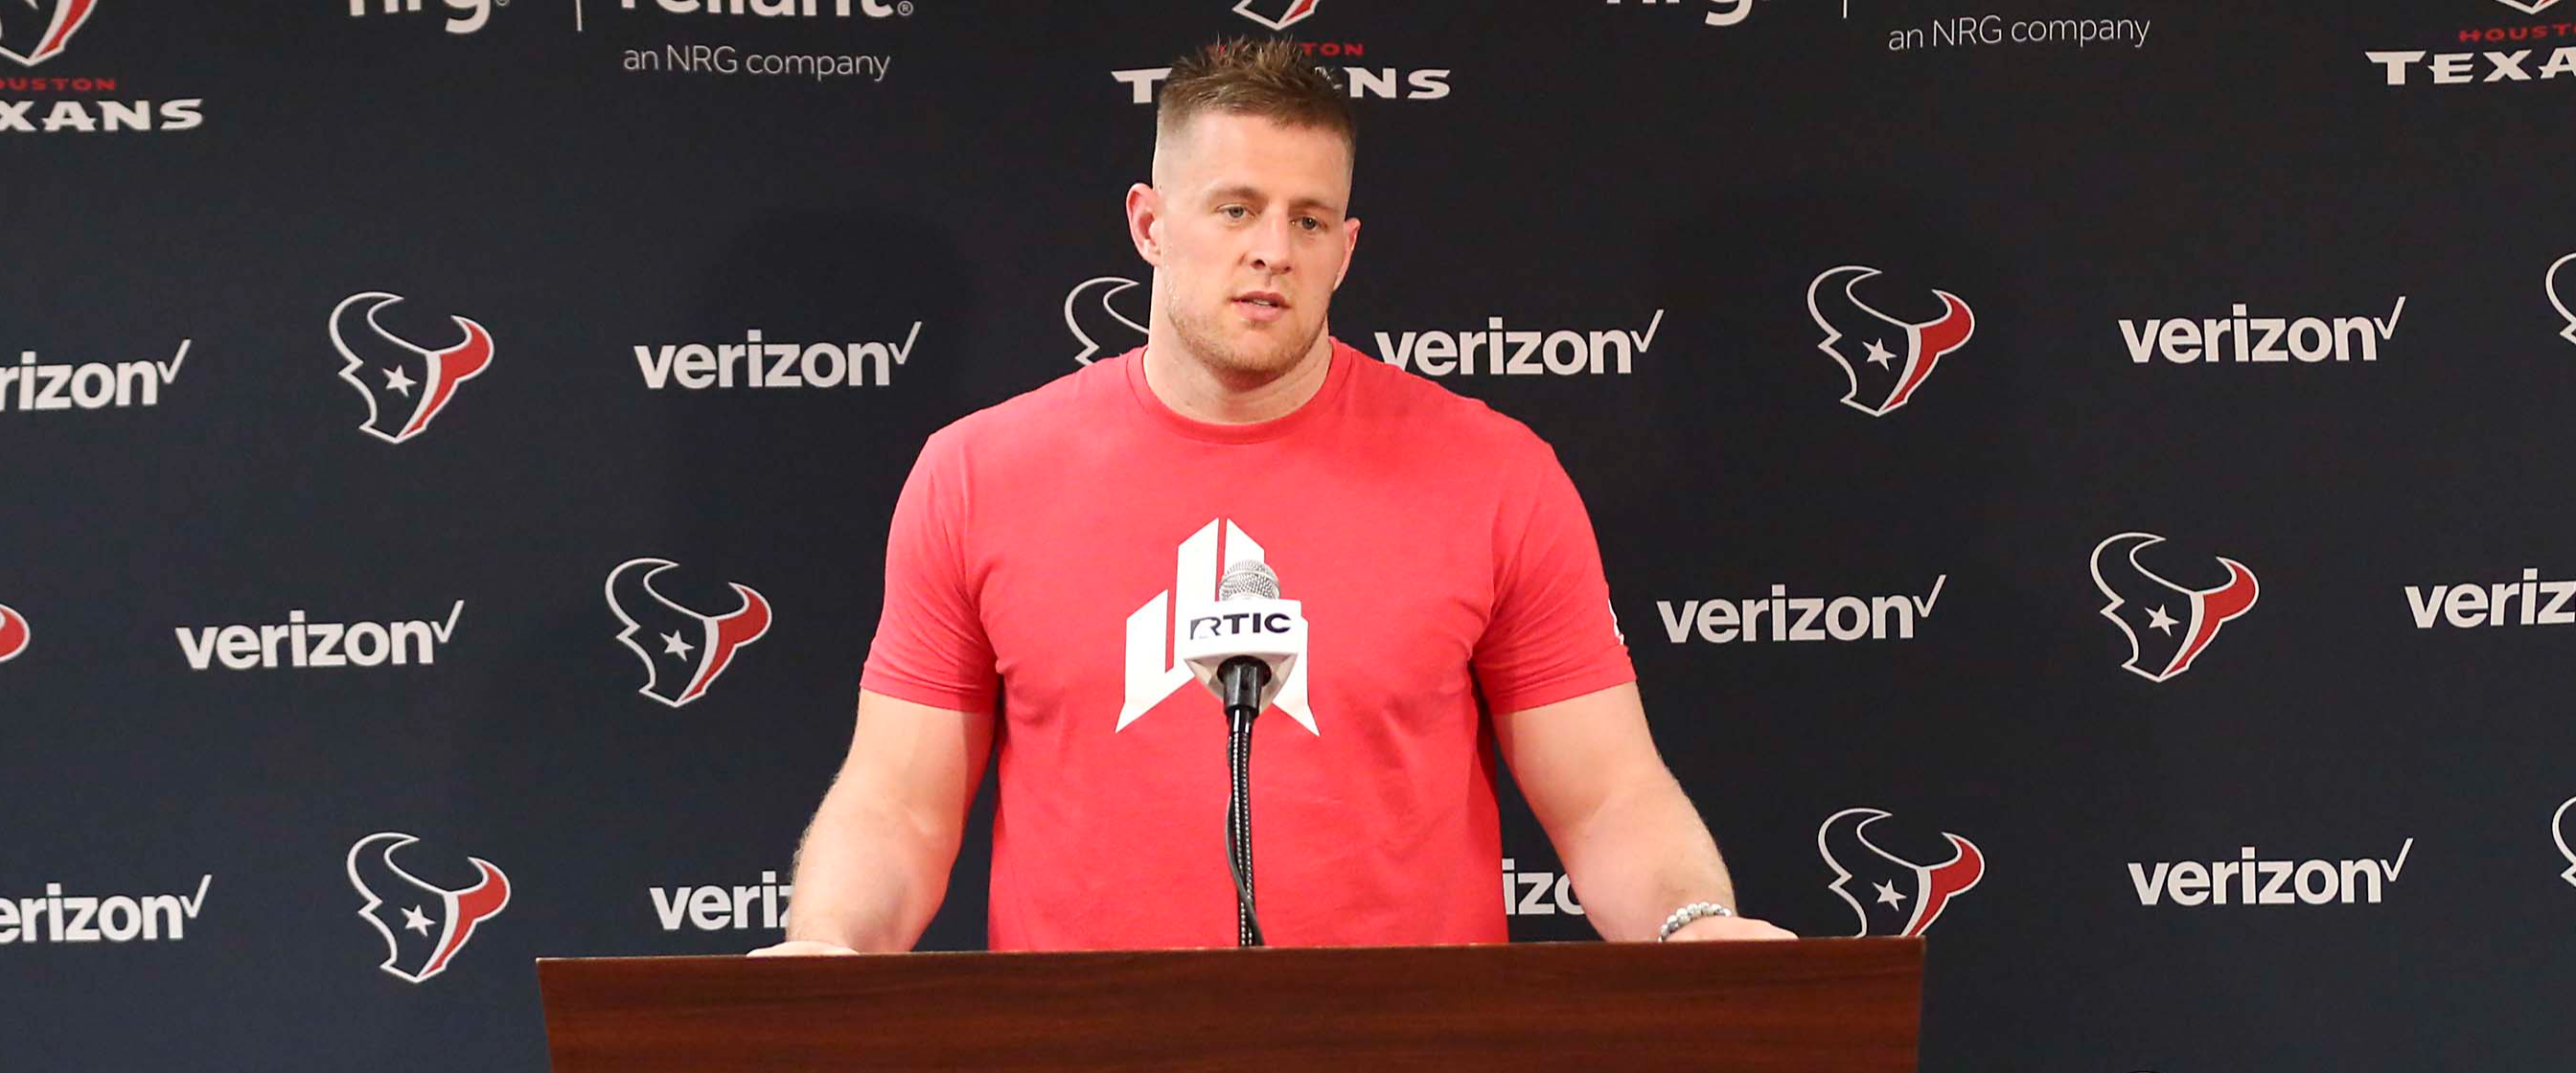 It's time for the Titans to go all in on J.J. Watt